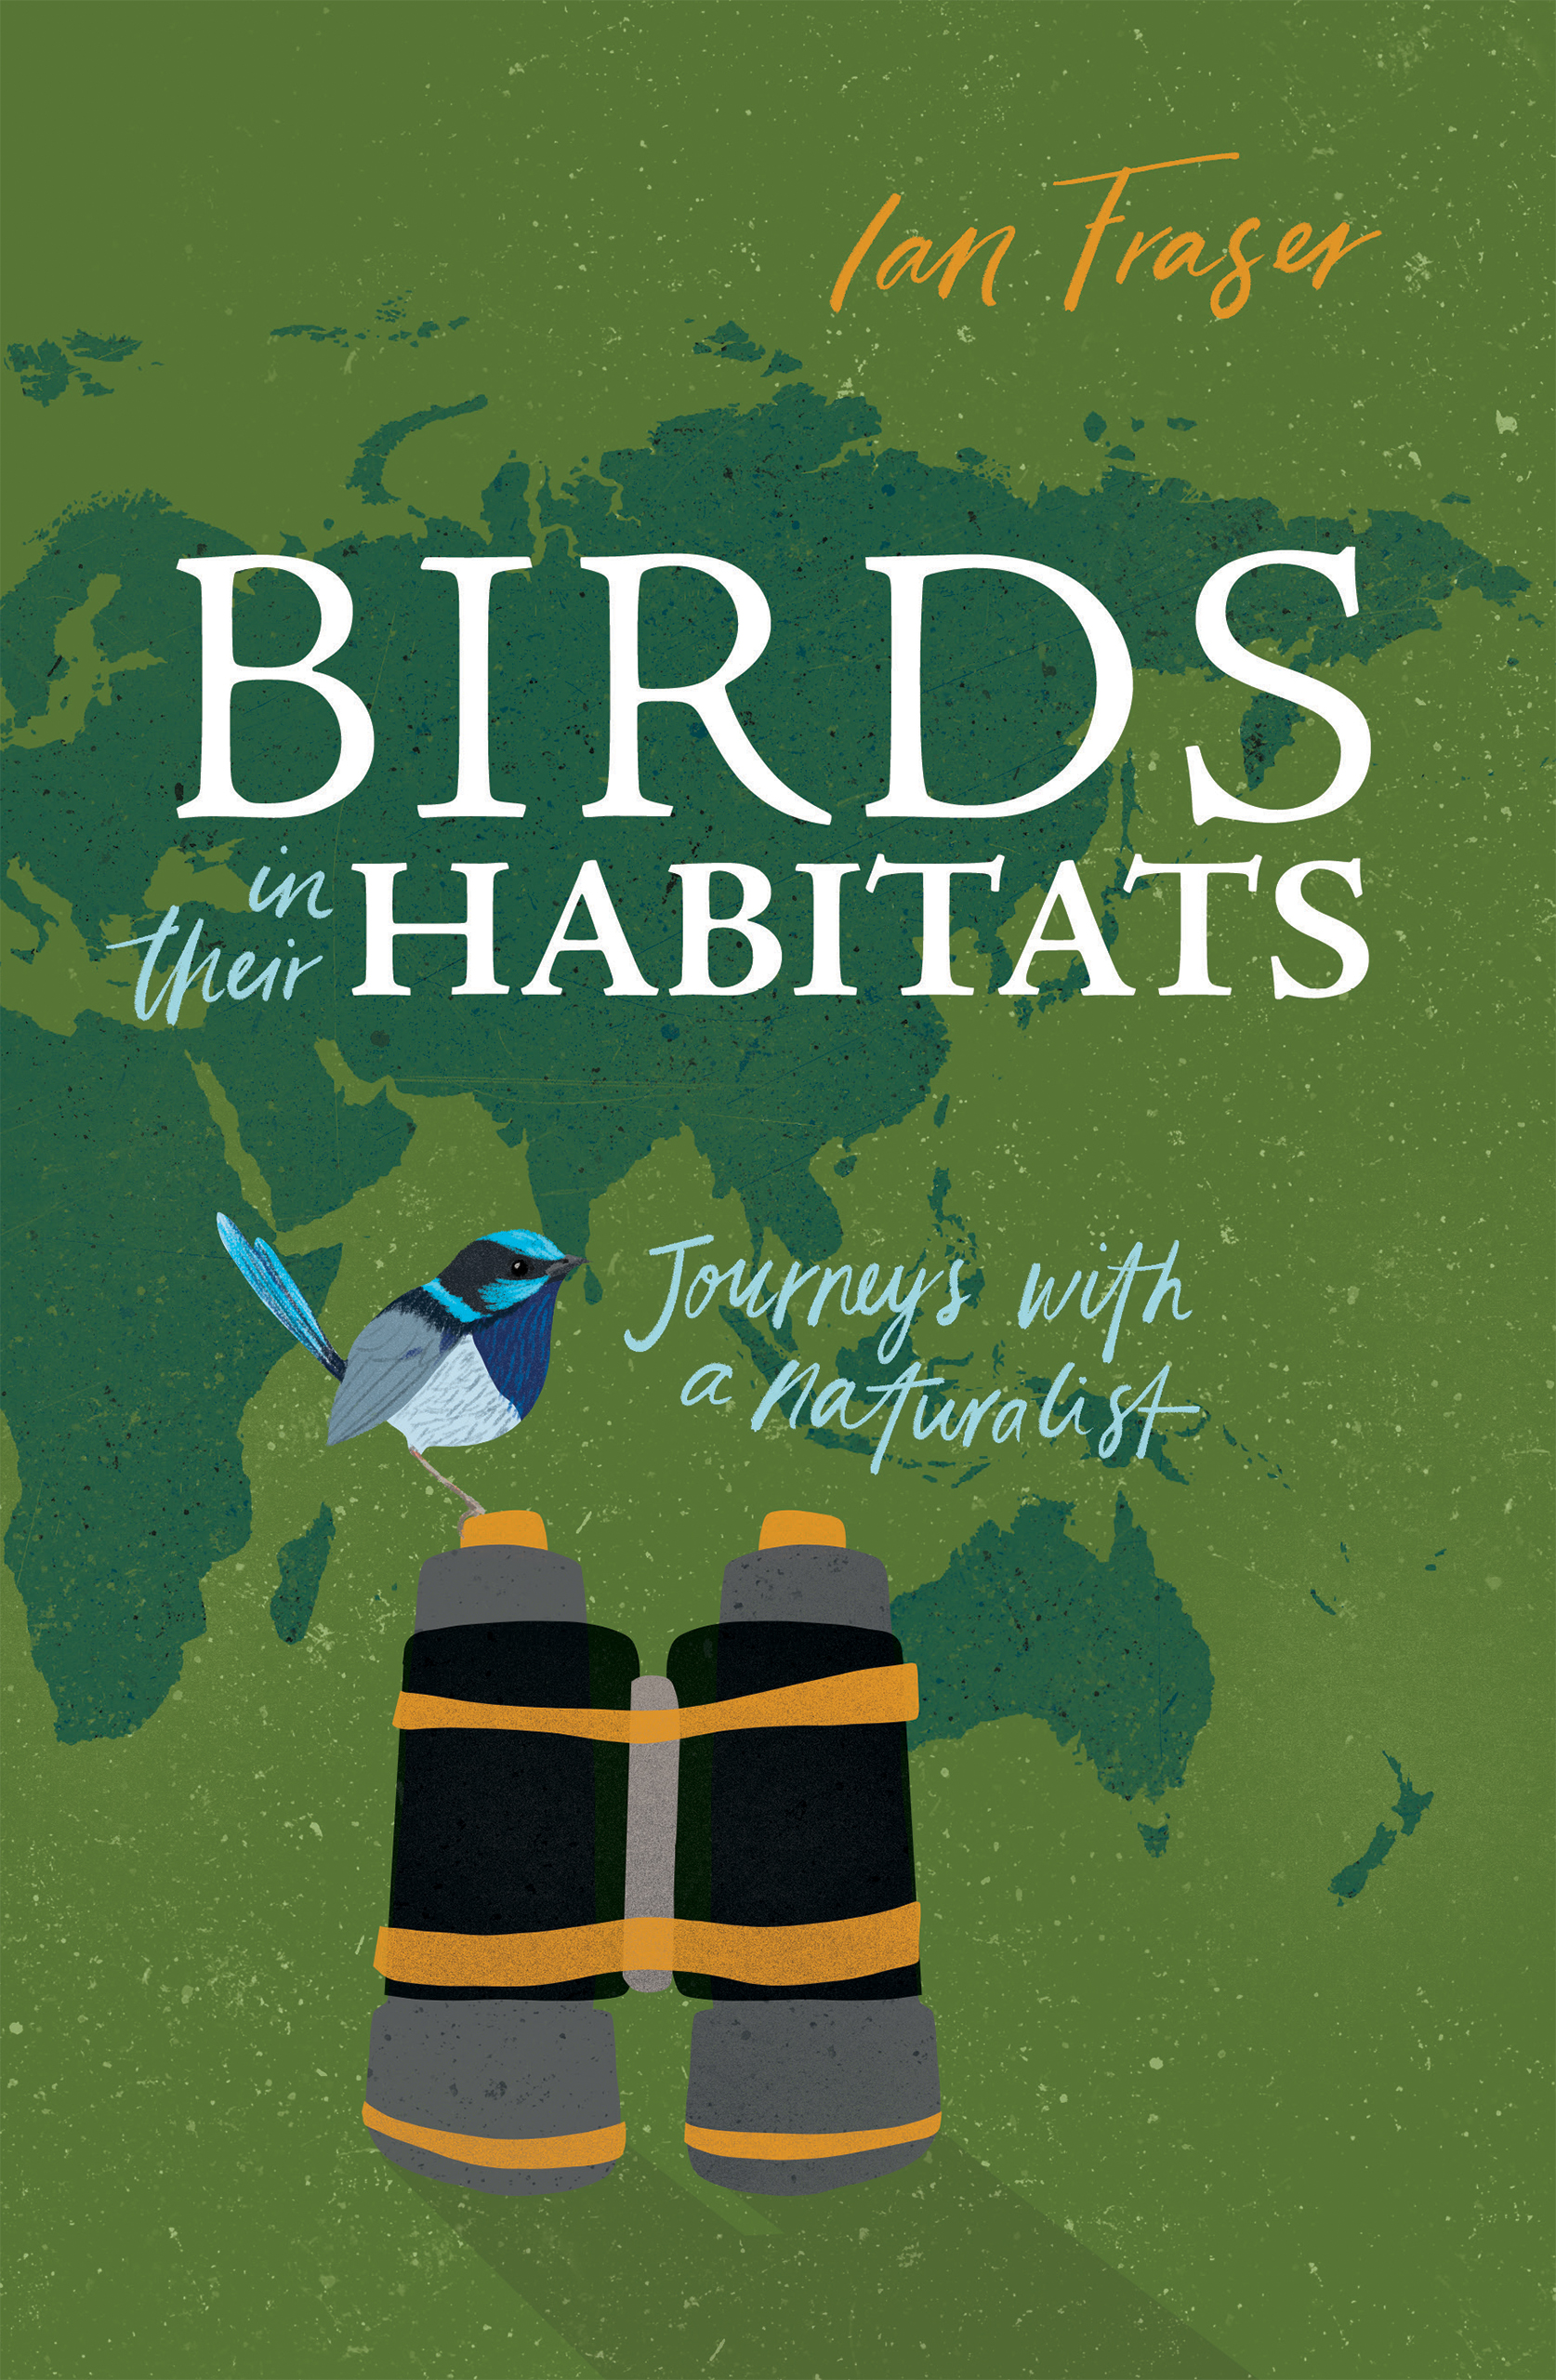 Birds in Their HabitatsJourneys with a Naturalist